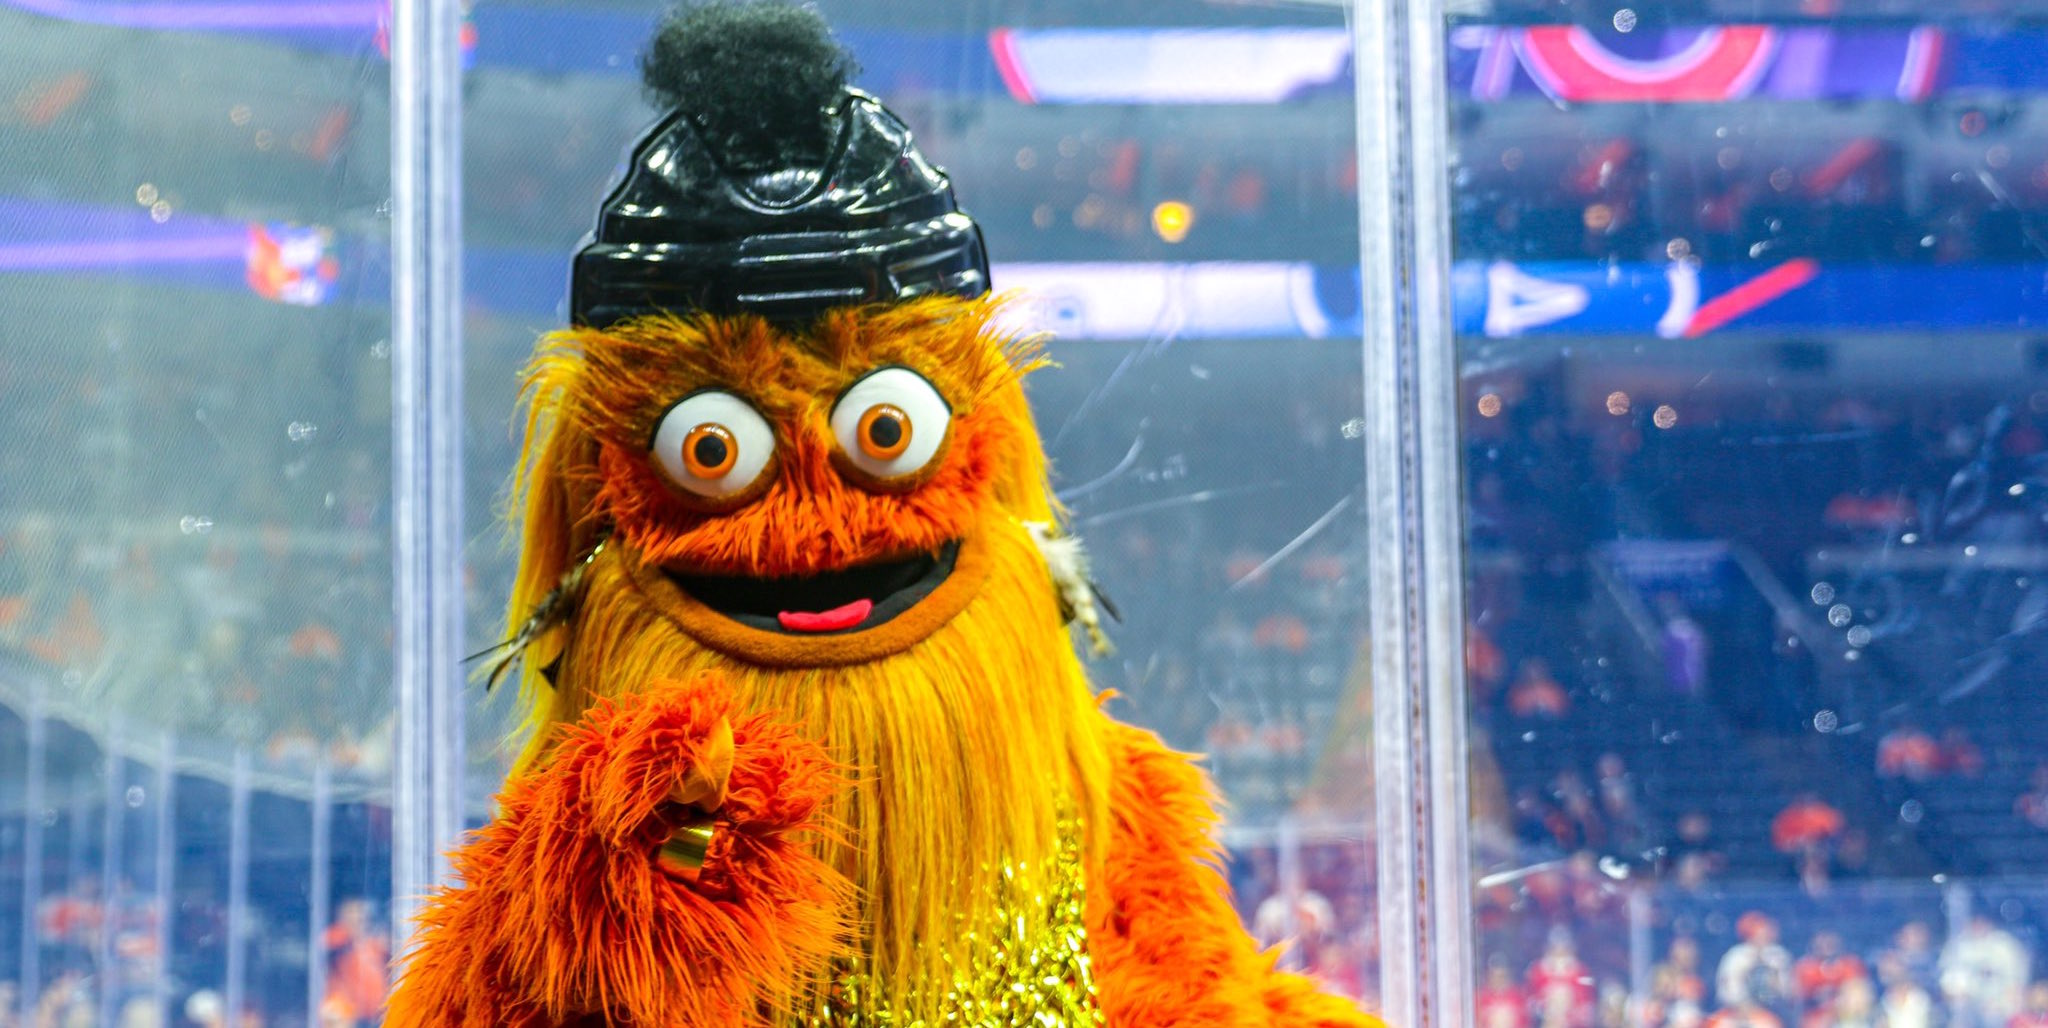 Philadelphia Flyers' mascot Gritty cleared of assault allegation